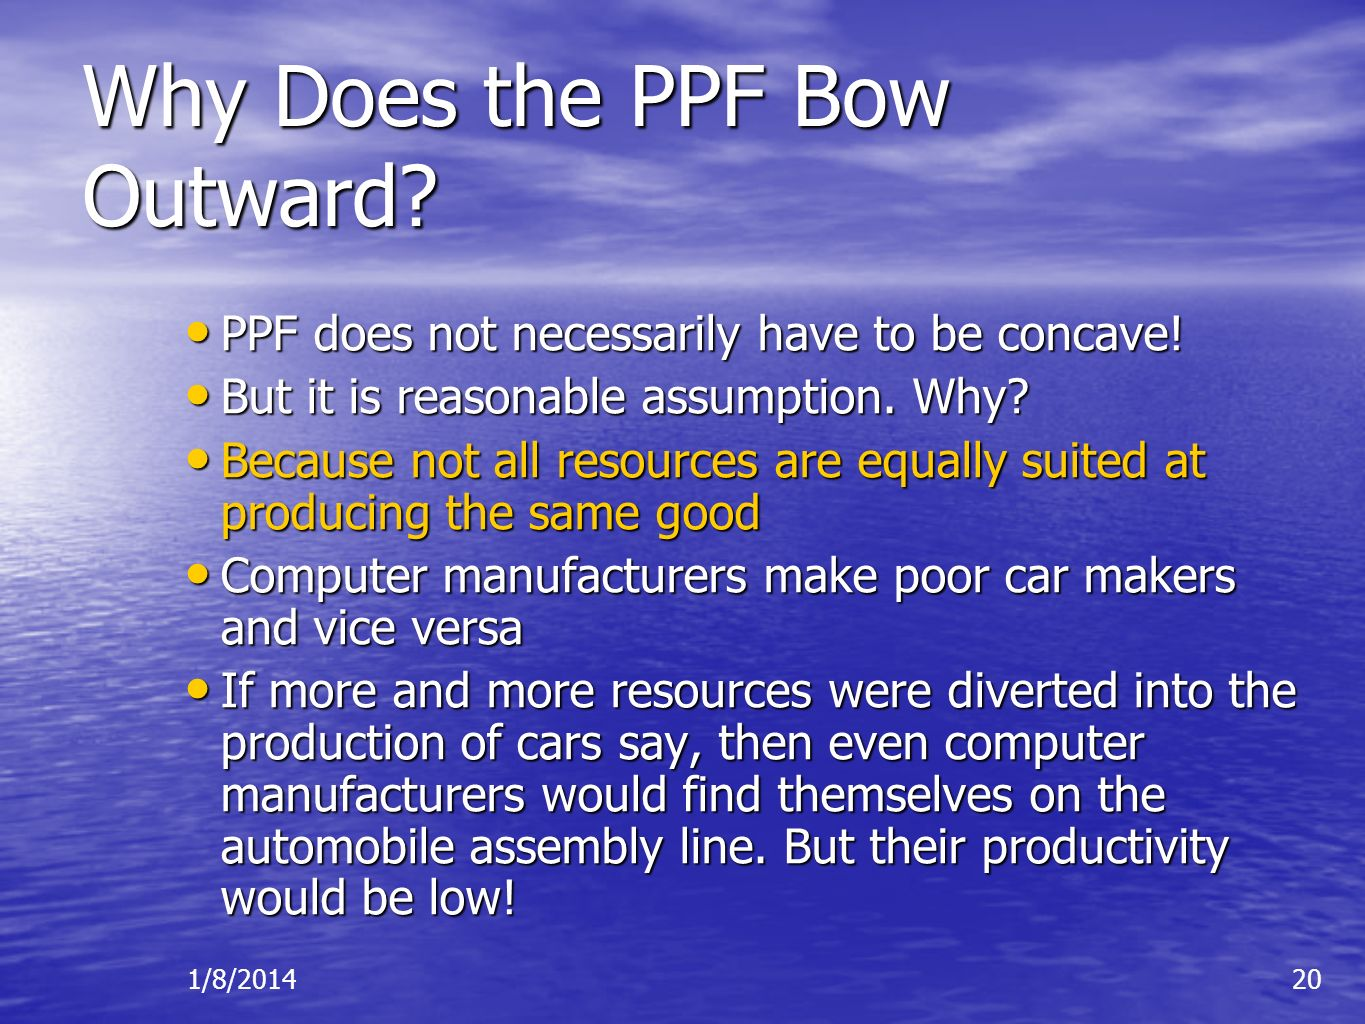 Why Does the PPF Bow Outward